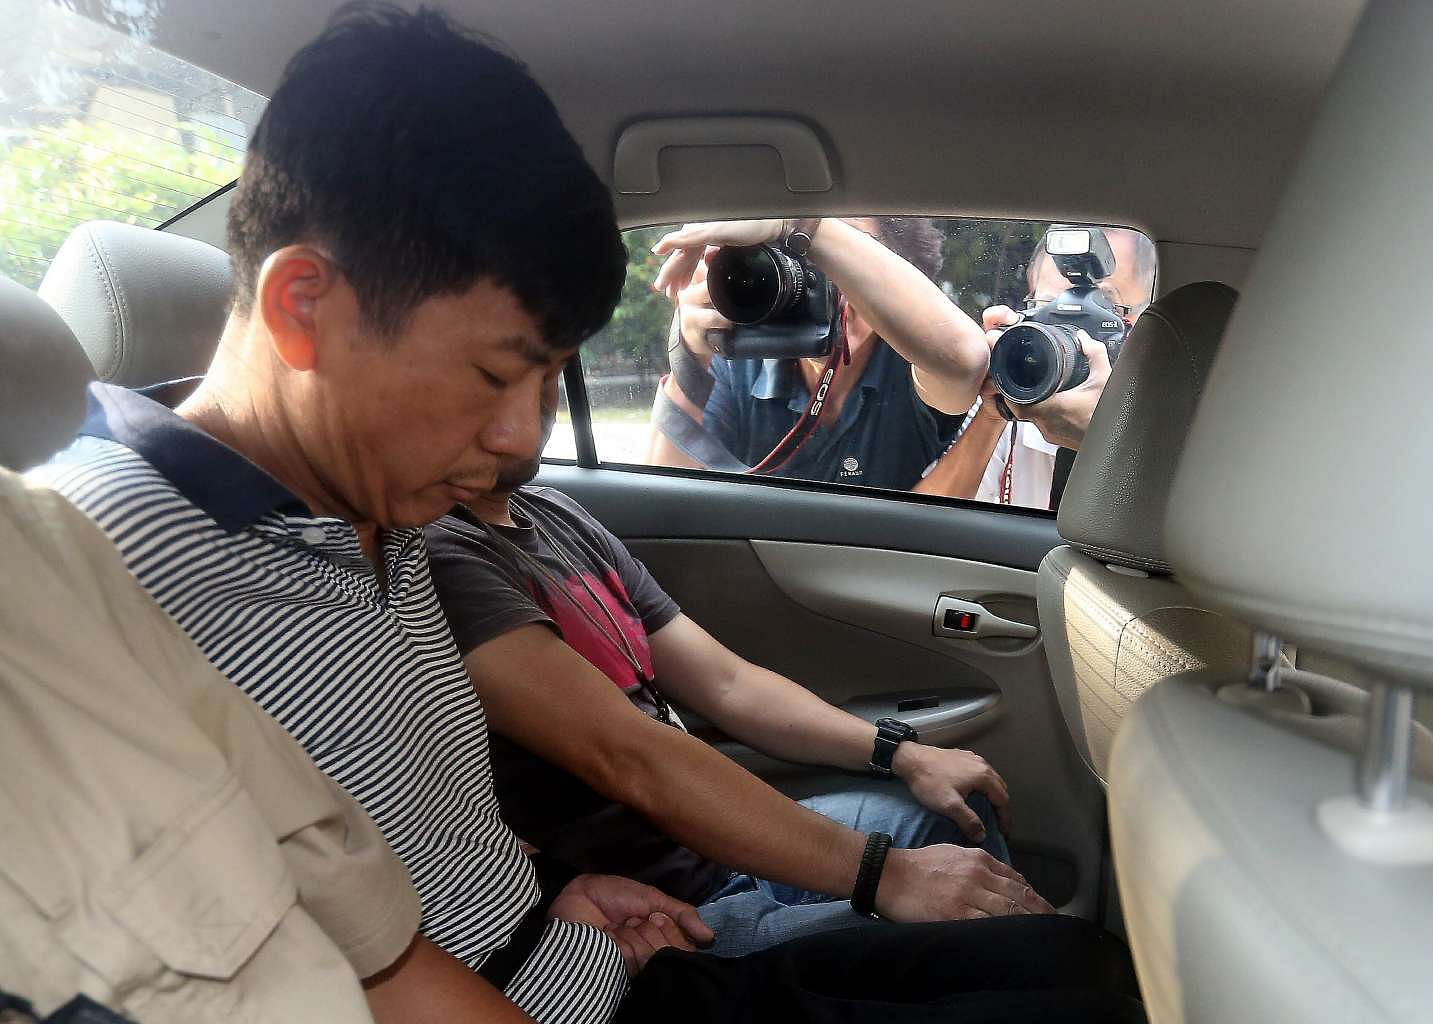 Man 47 Charged With Murder Of Woman In Circuit Road Flat Courts Http Wwweastmarinedrivecom Conten Circuit2jpg Crime News Top Stories The Straits Times